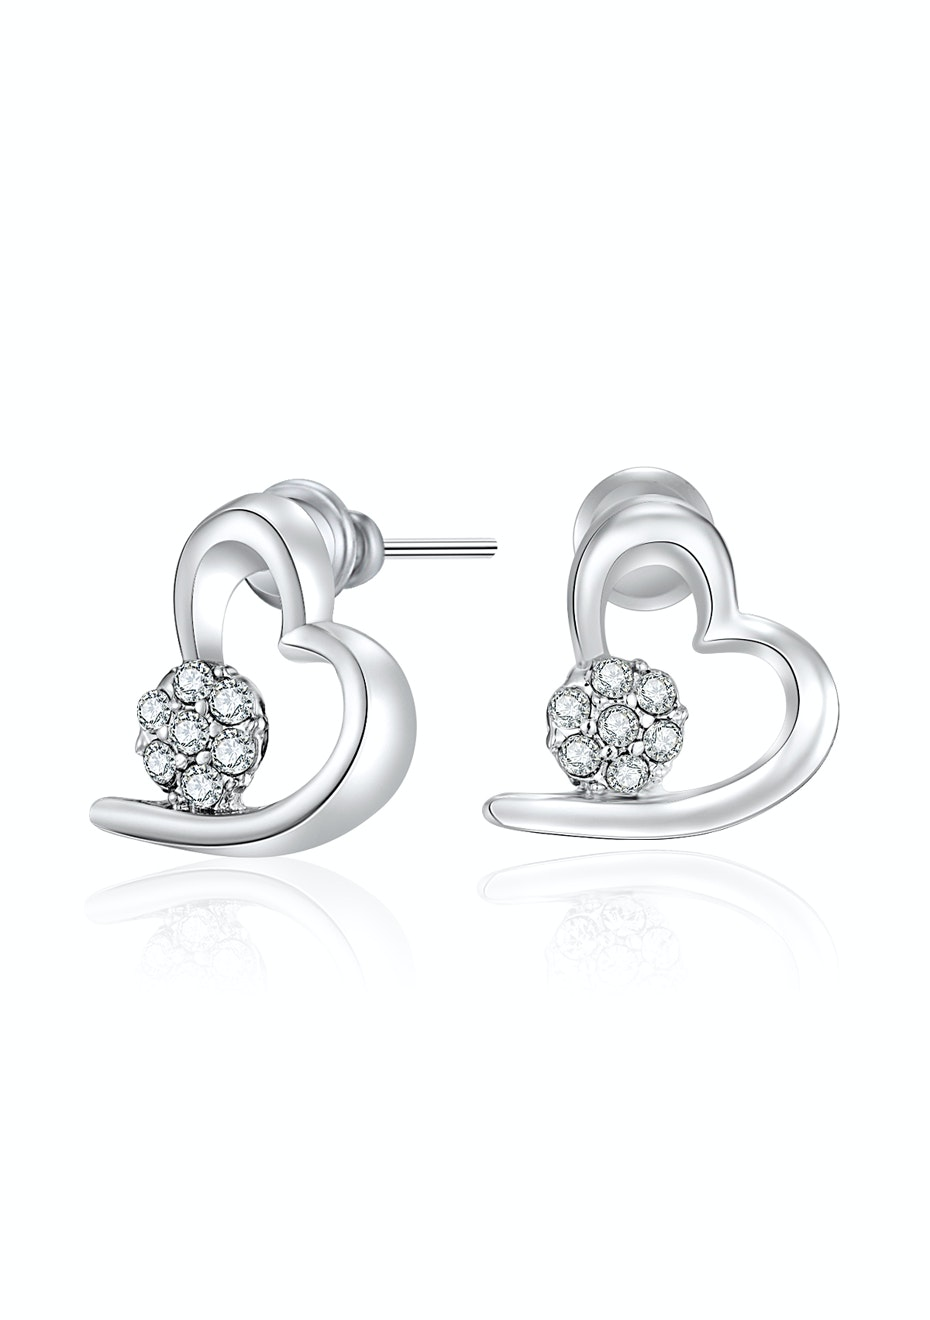 Heart earrings Embellished with Crystals from Swarovski